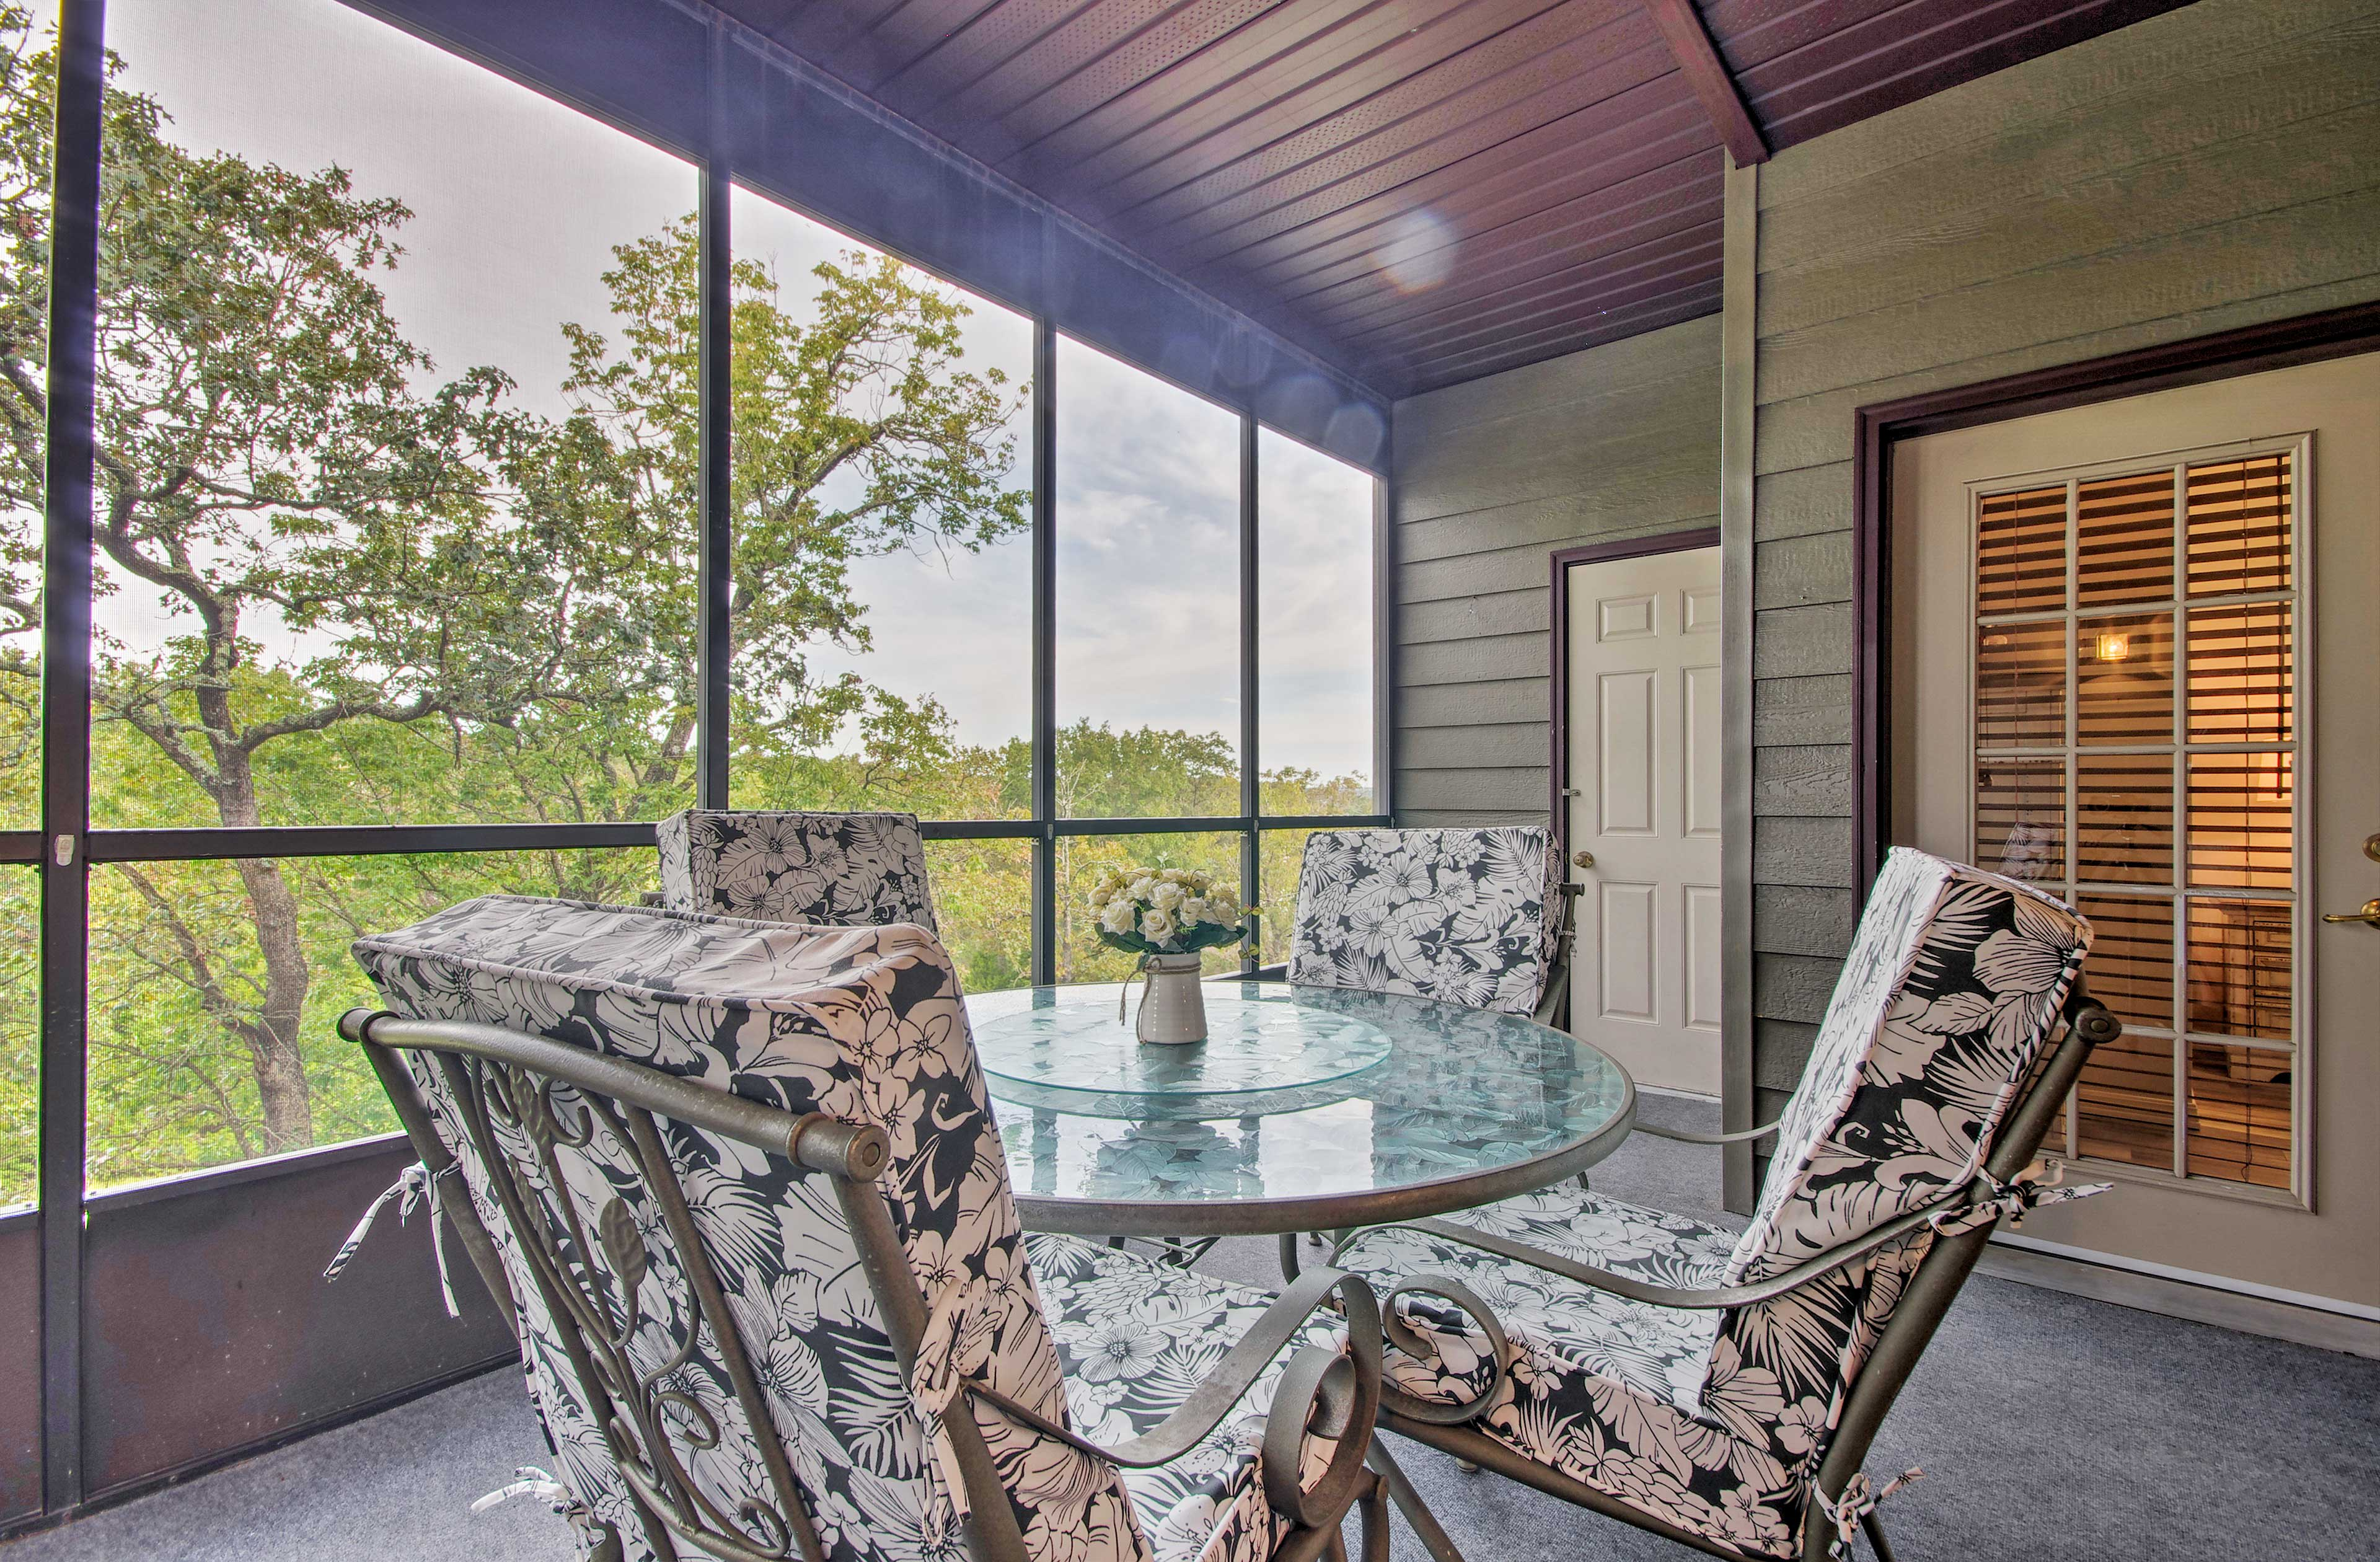 Dine outdoors on the screened-in balcony.